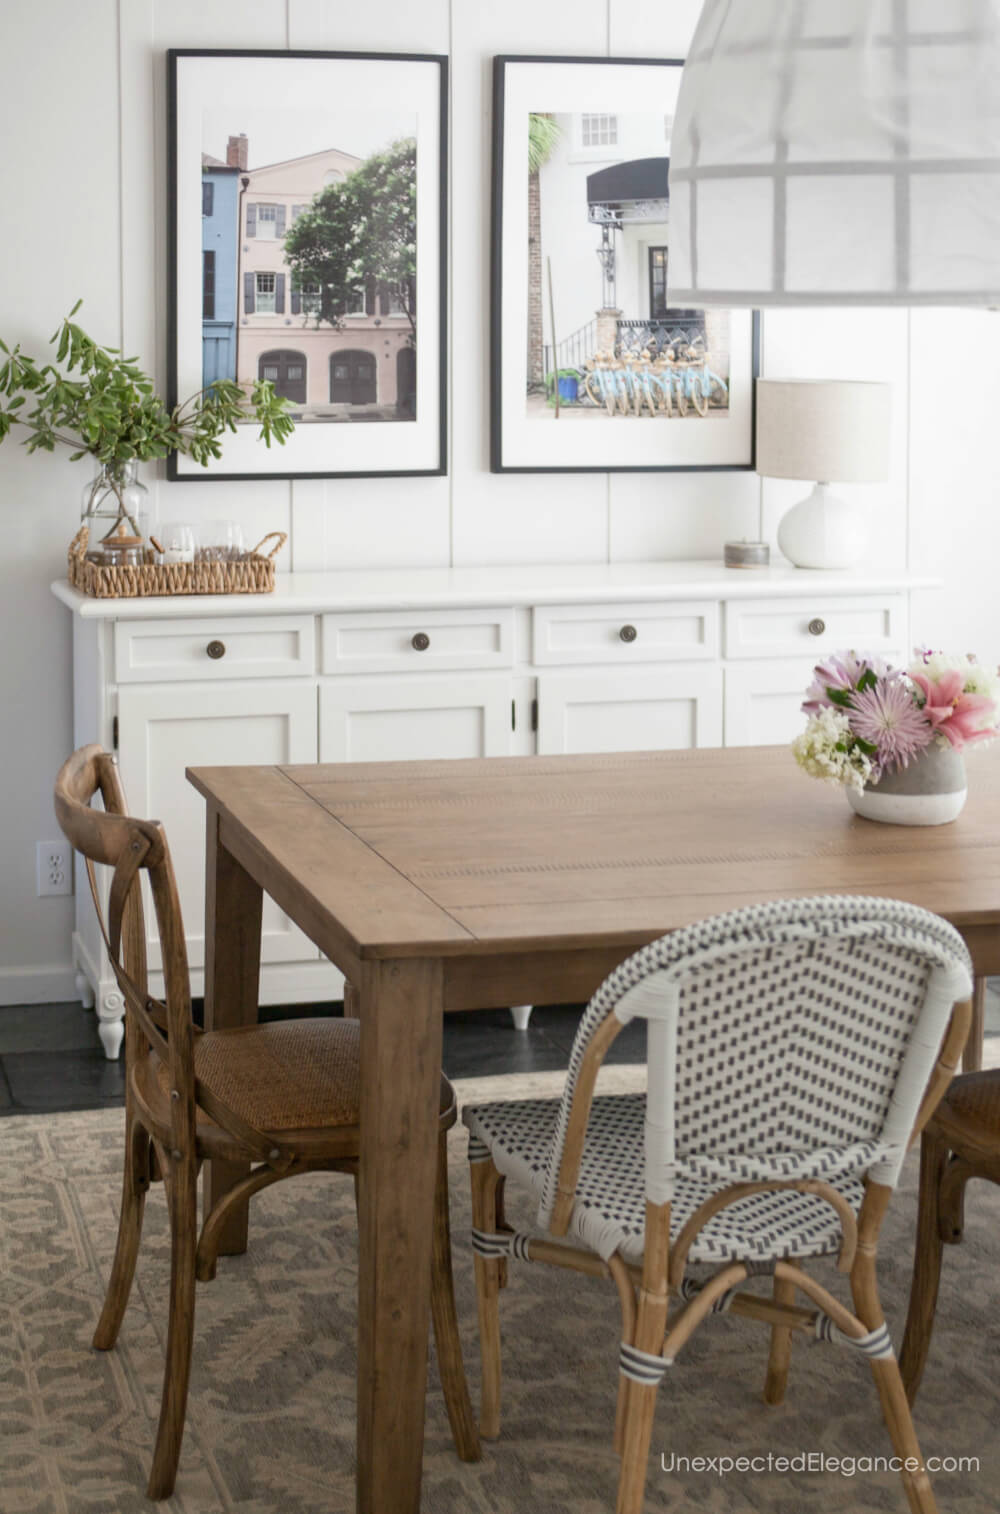 Inspiration from this farmhouse style dining room transformation!